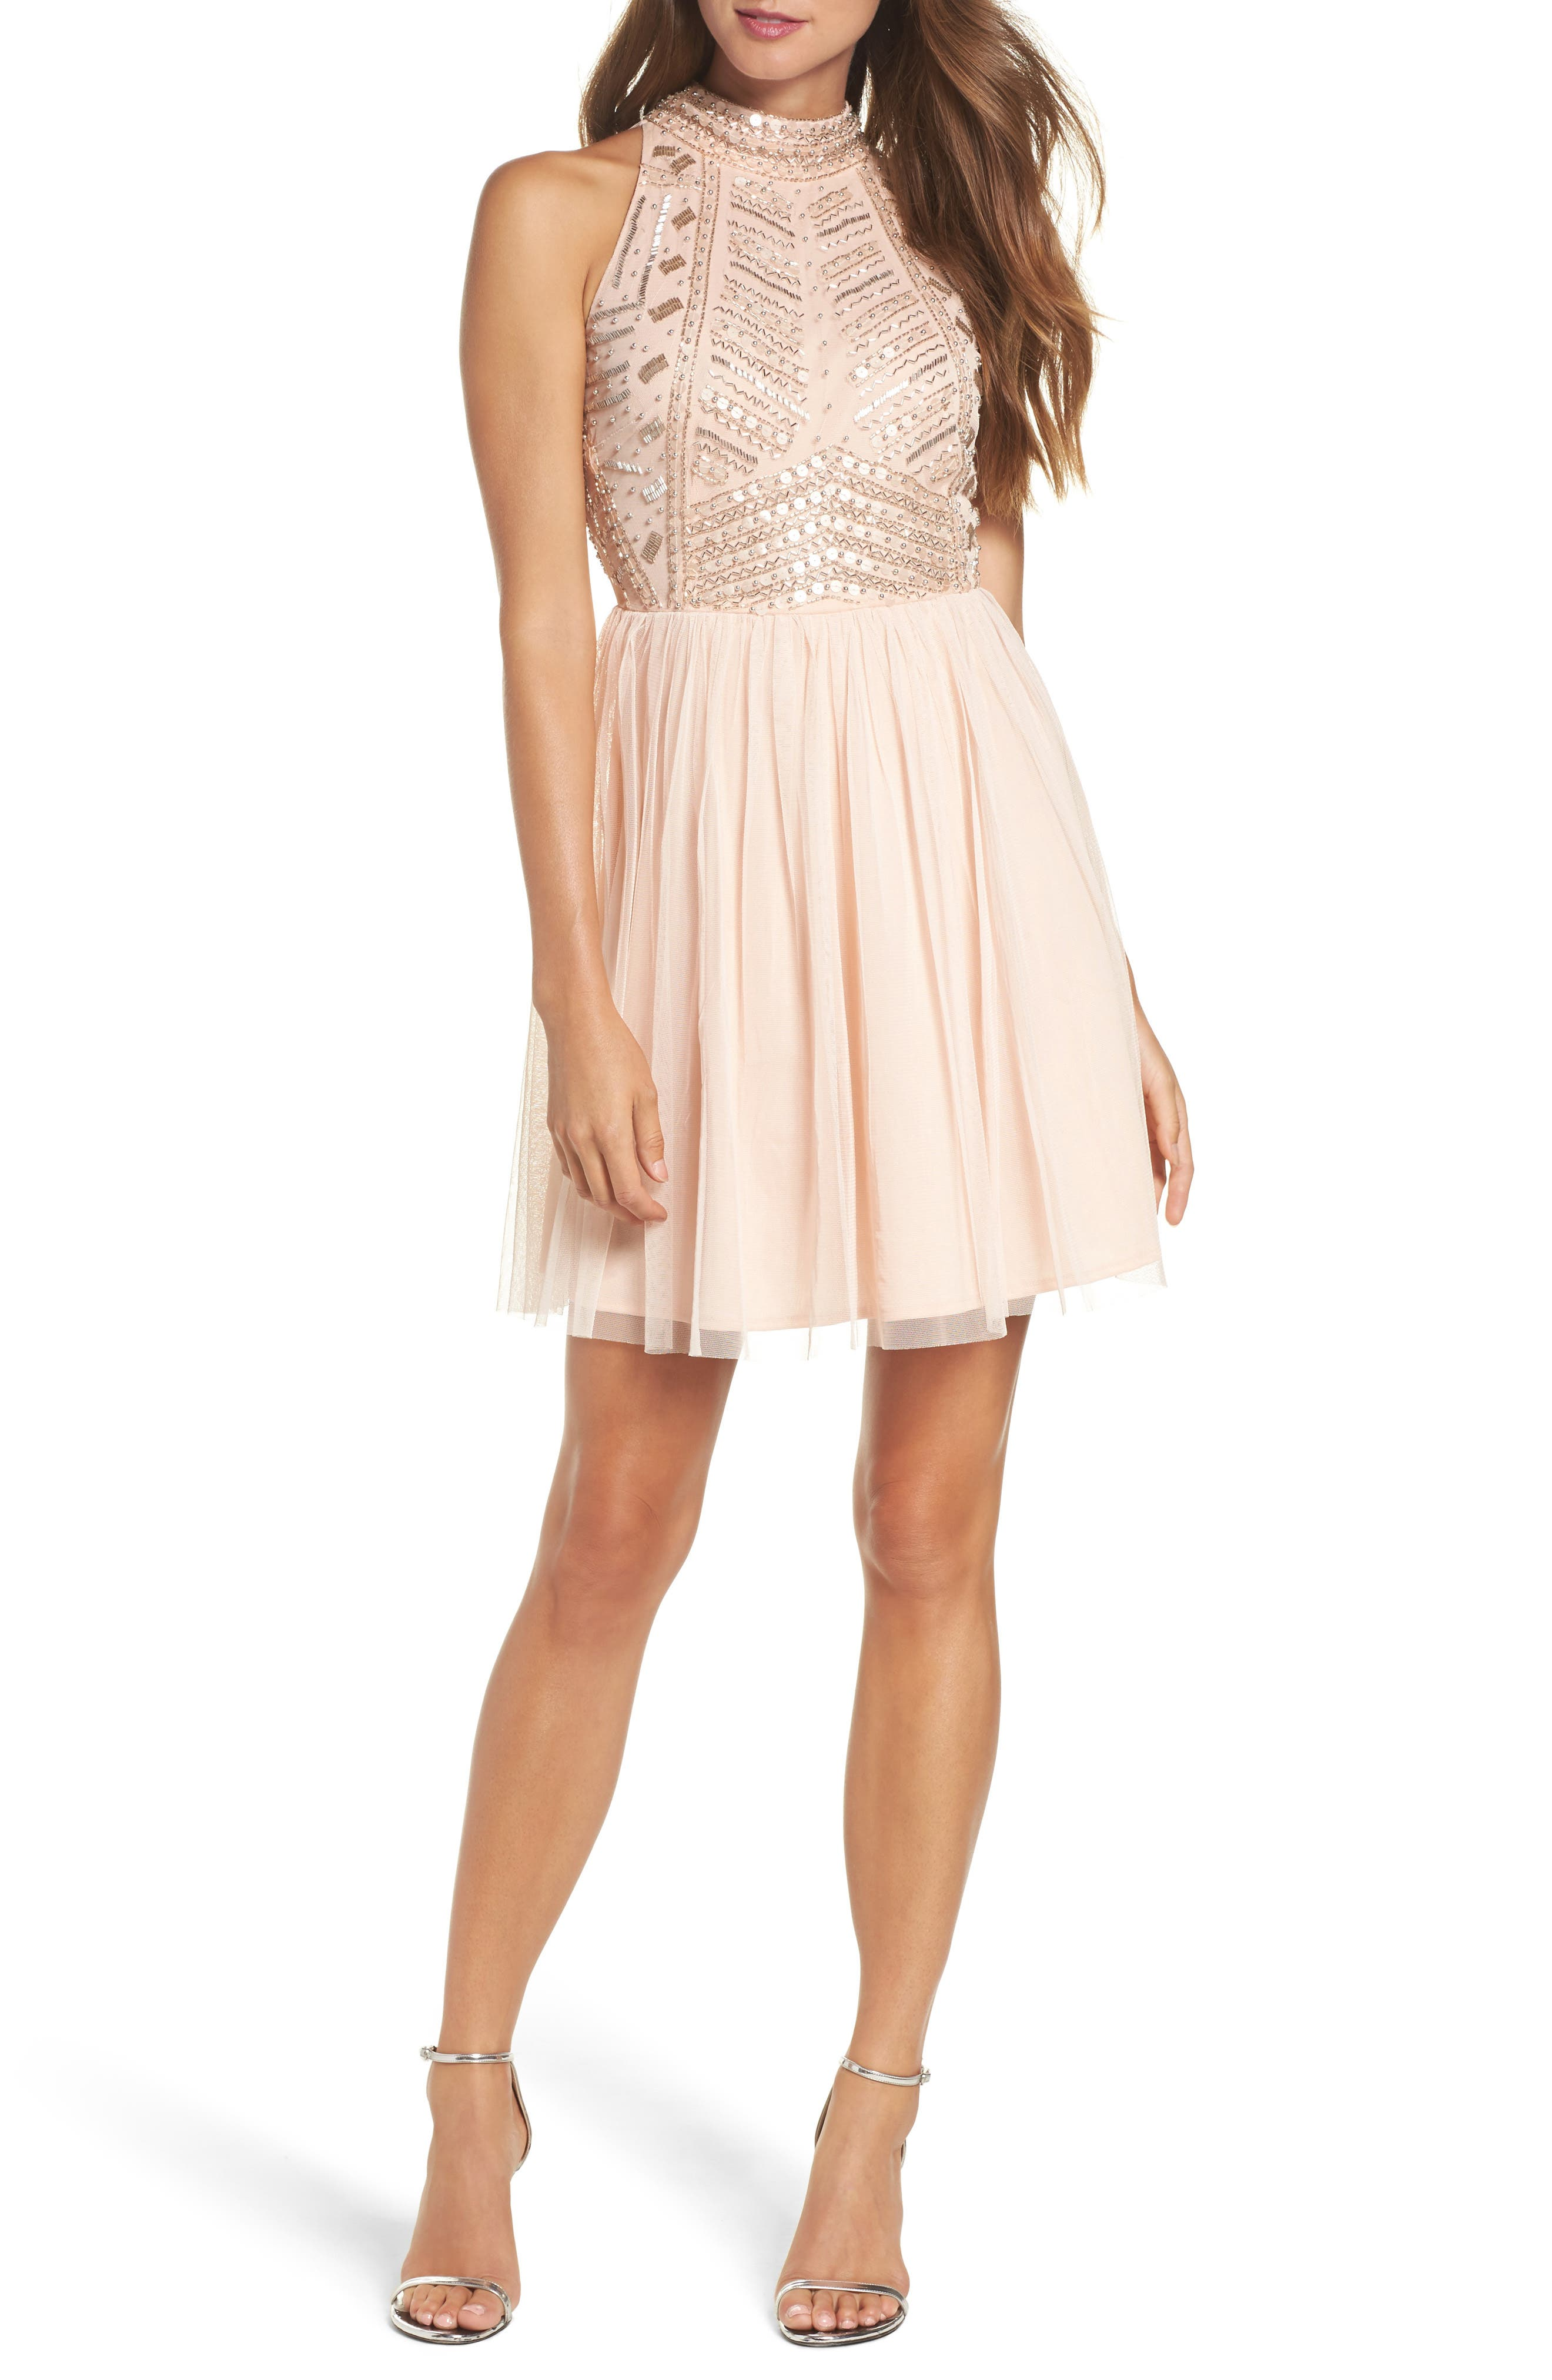 Alternate Image 1 Selected - Lace & Beads Wren Beaded Skater Dress